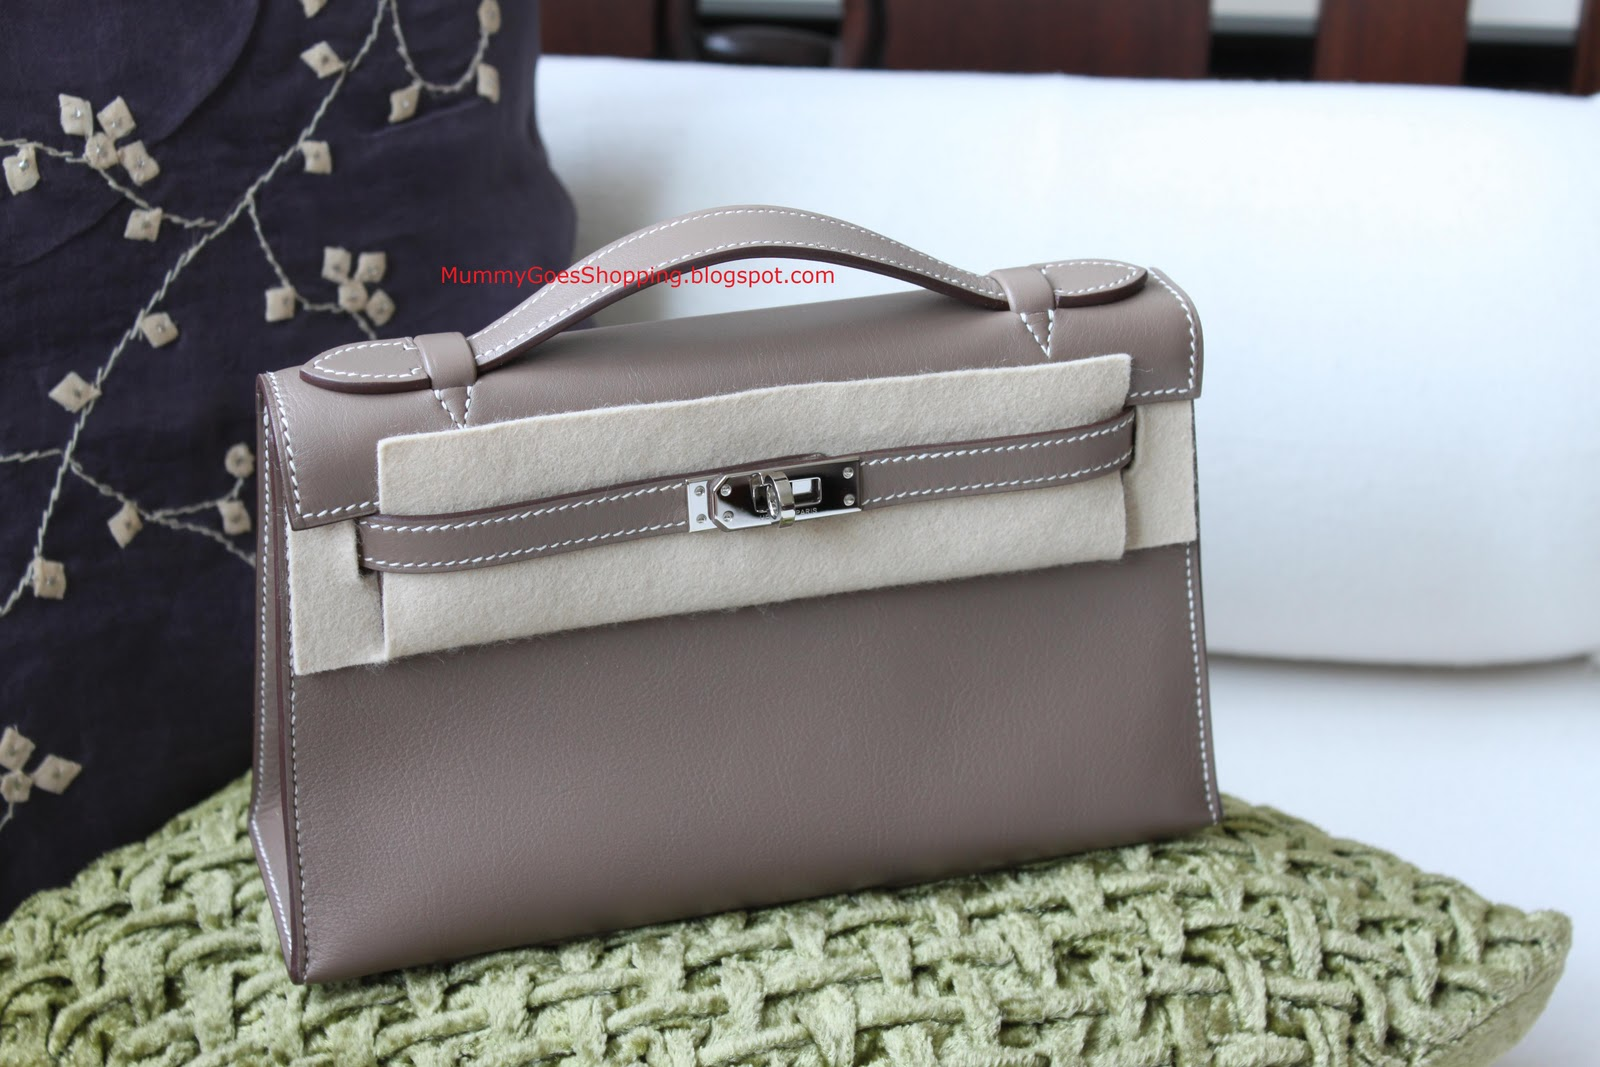 42d5a465f45fc Hermes Kelly Pochette in Etoupe swift leather. Hardwares are in Palladium.  L stamped but used twice. It is MINT. No flaws at all.